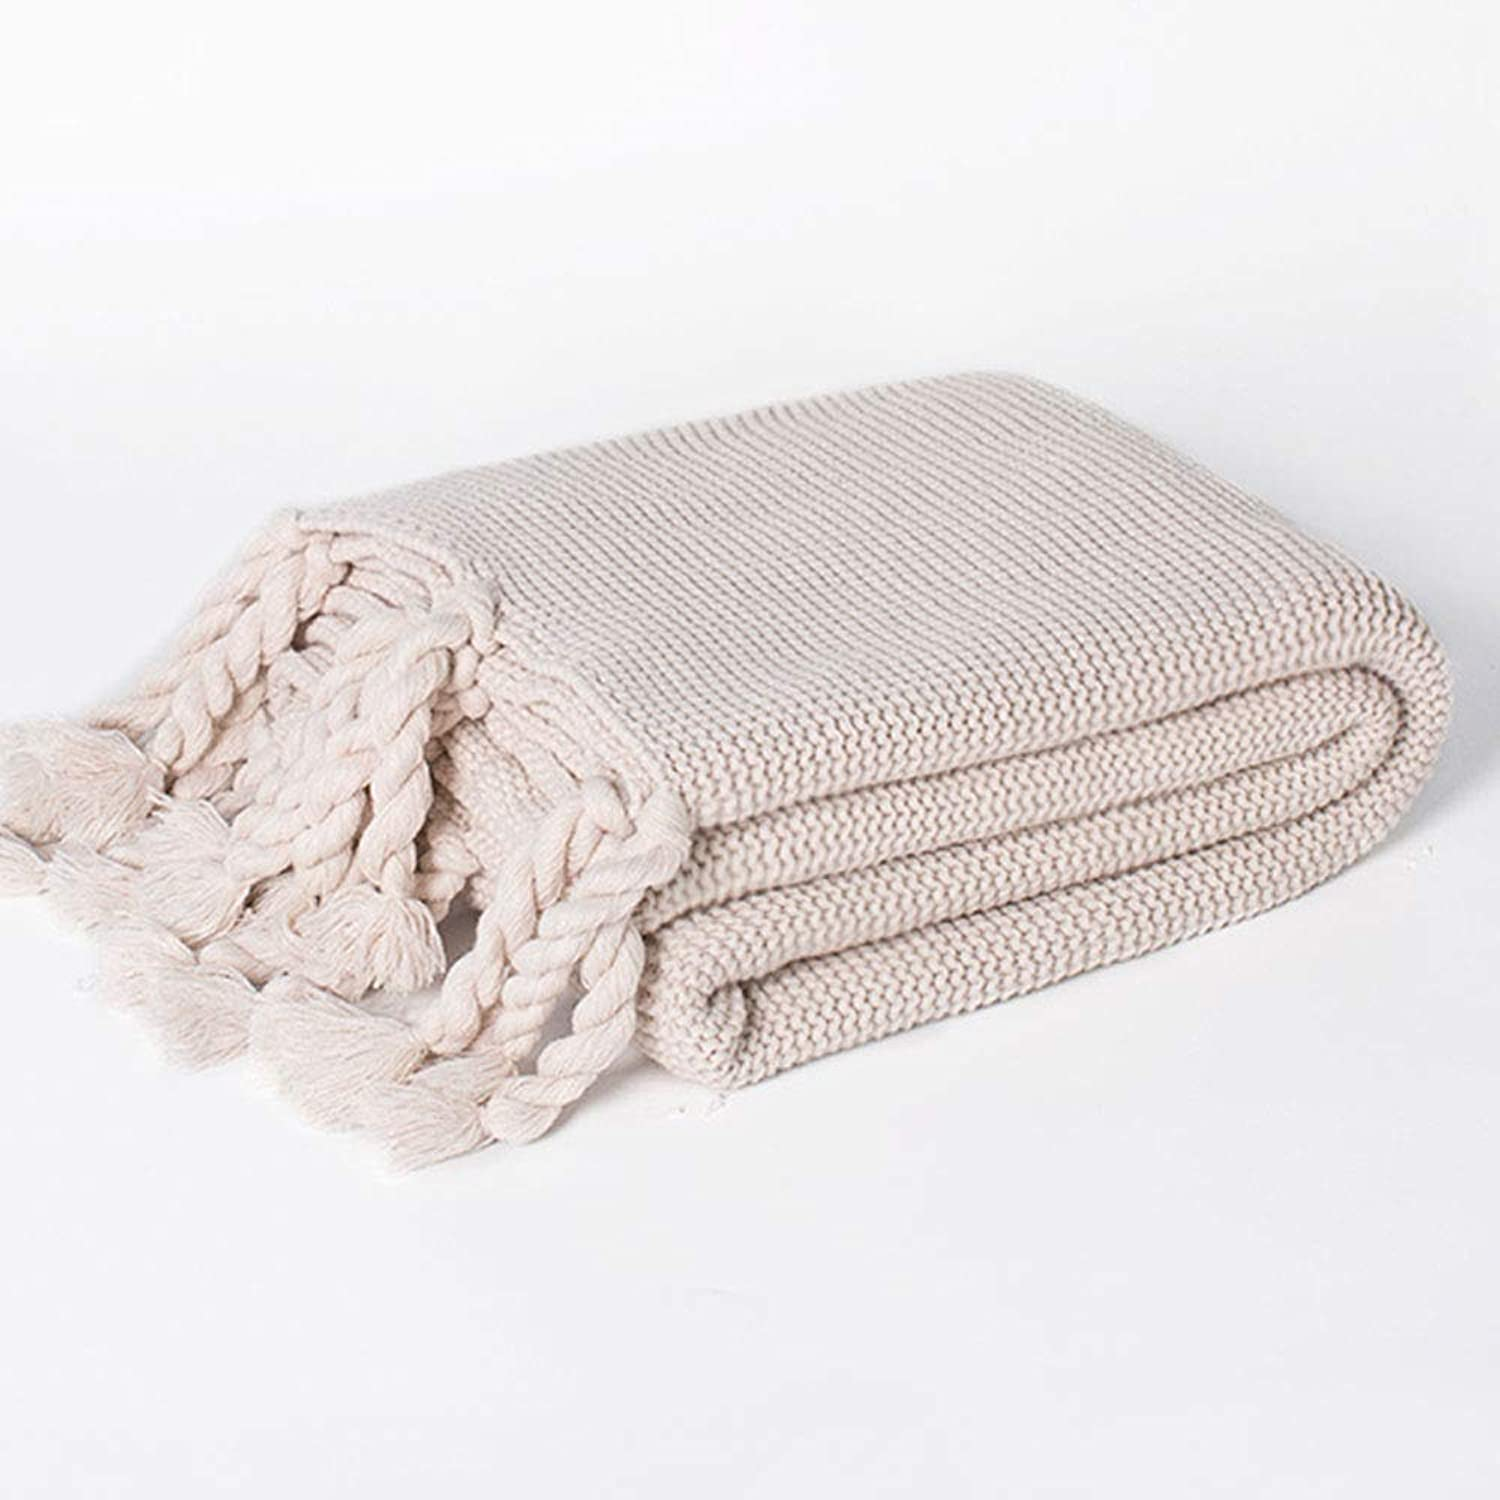 Photography Knitted Big blanket Soft Tassel Sofa blanket Covered Office Casual Napping blanket (color   Beige, Size   51.18  66.93)